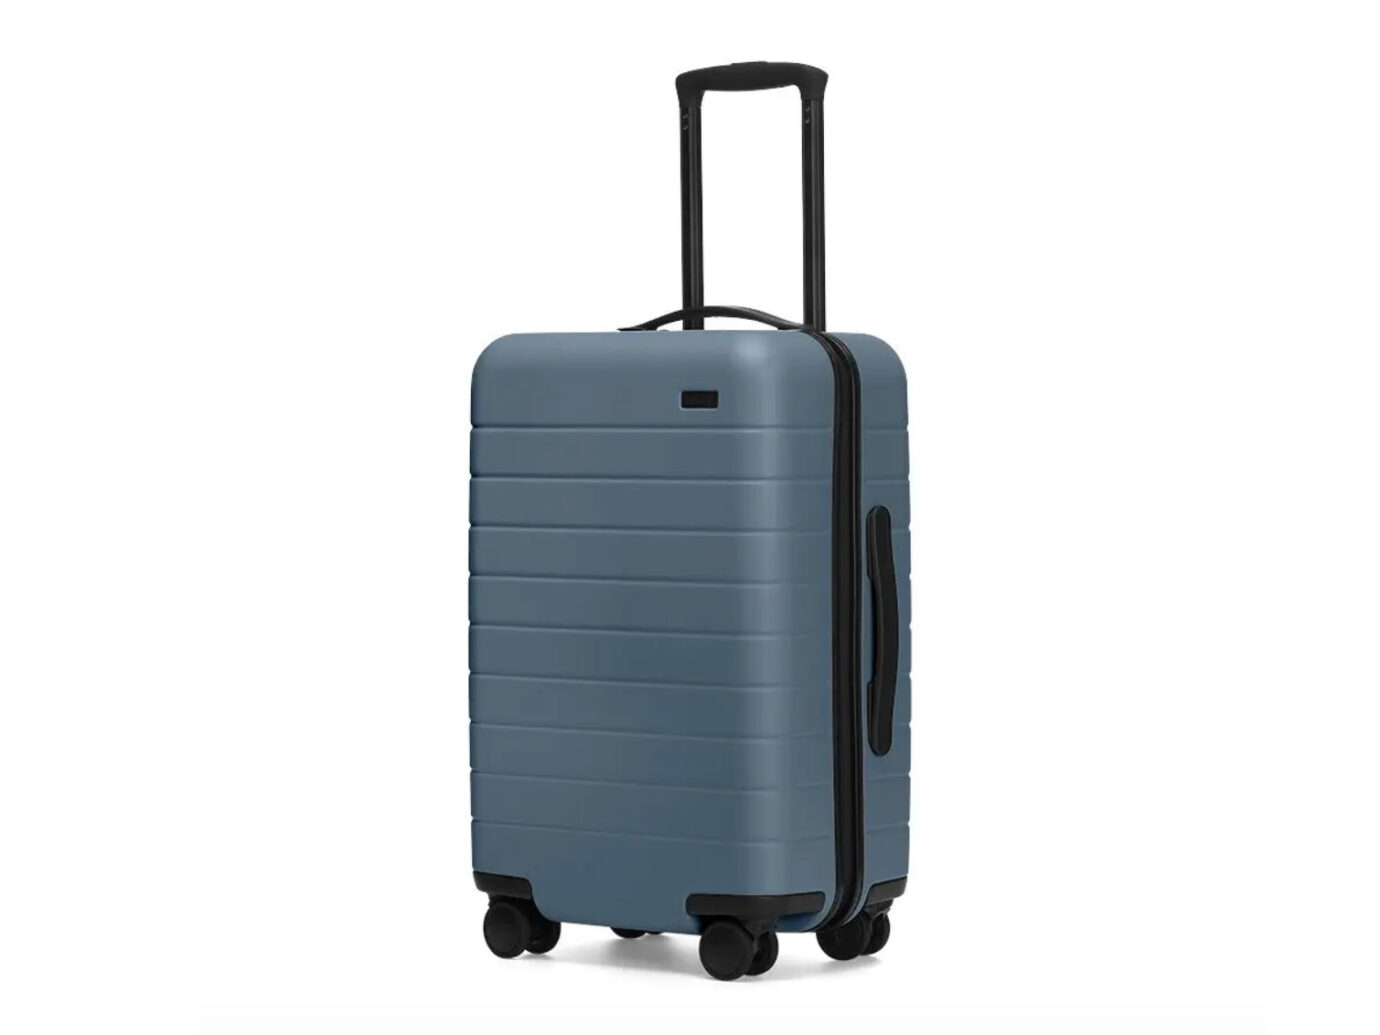 Away Carry On Luggage